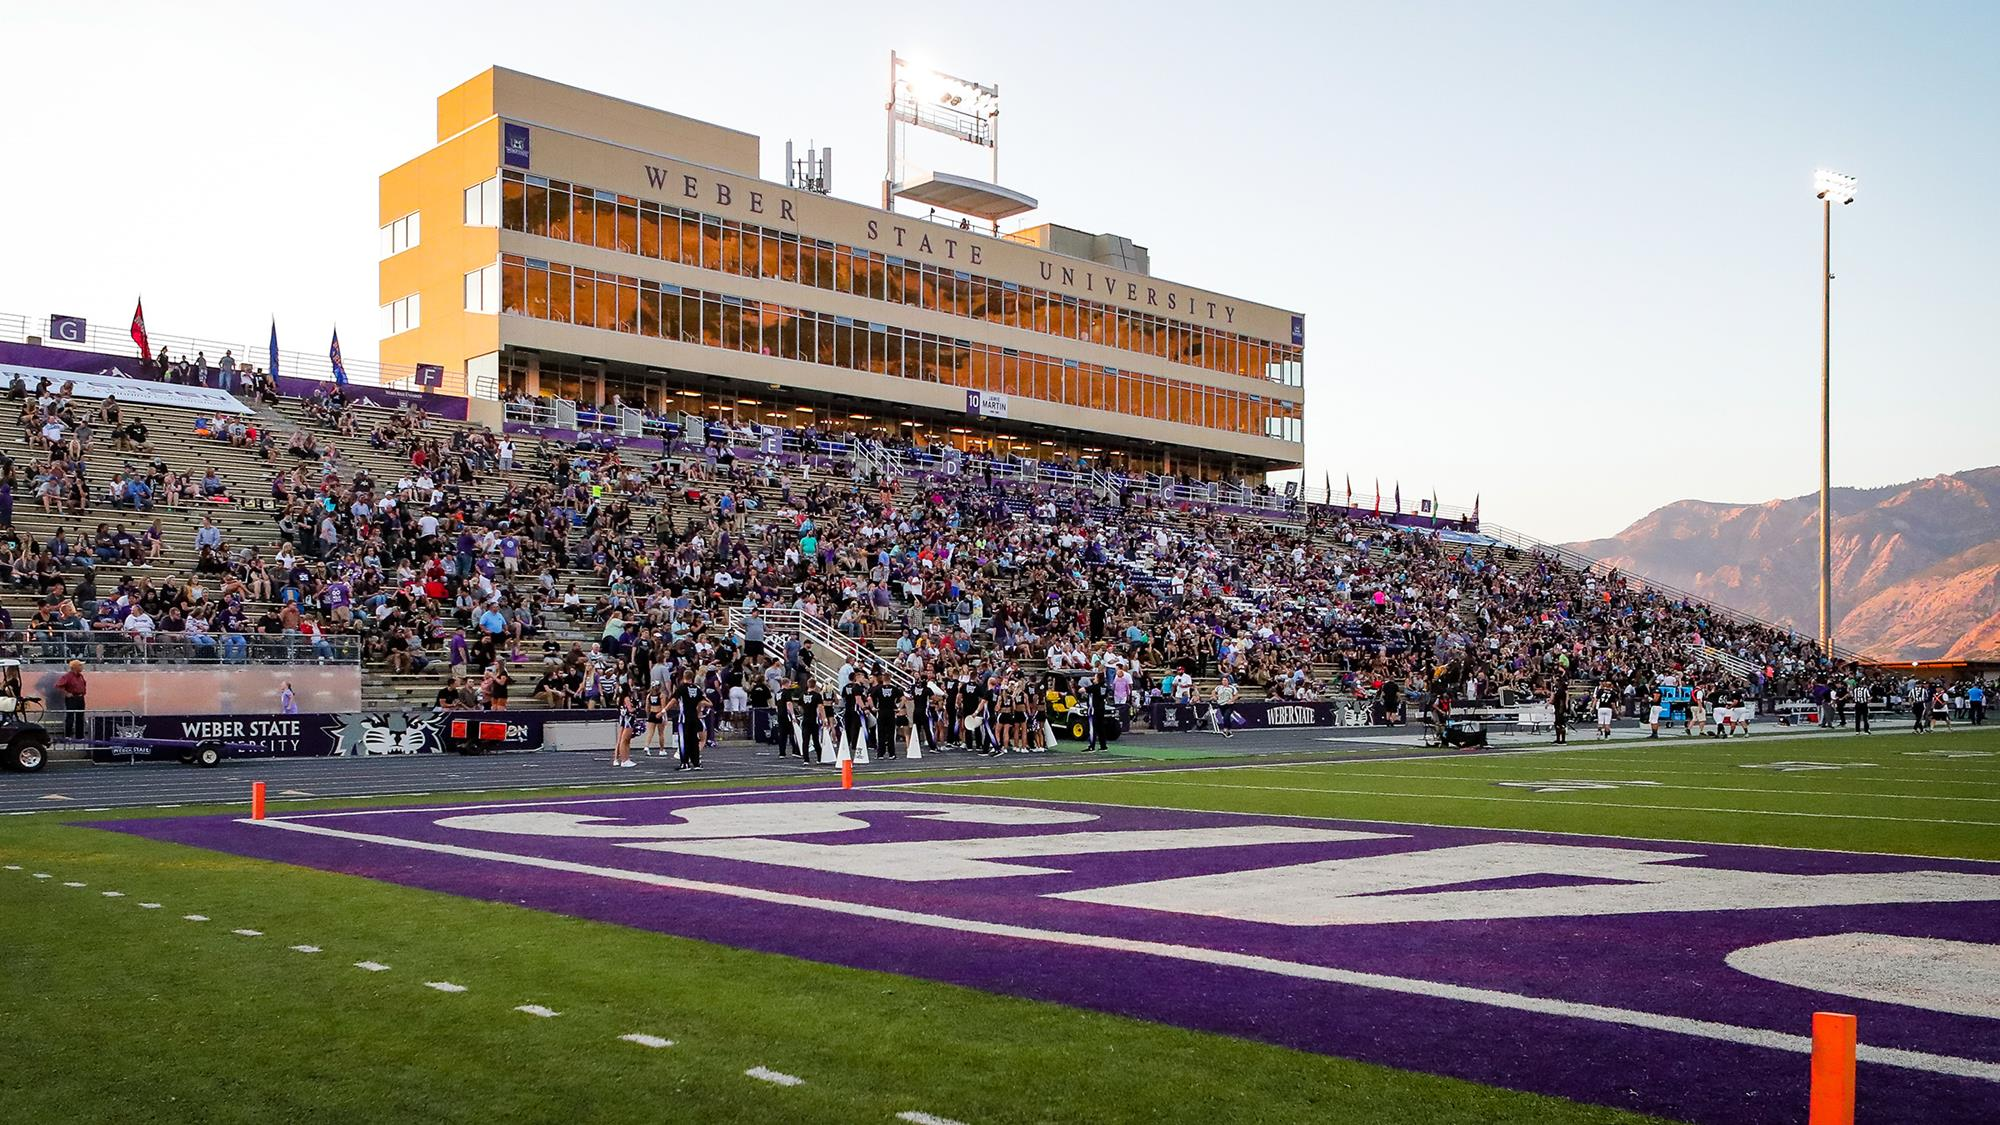 Image result for weber state football stadium